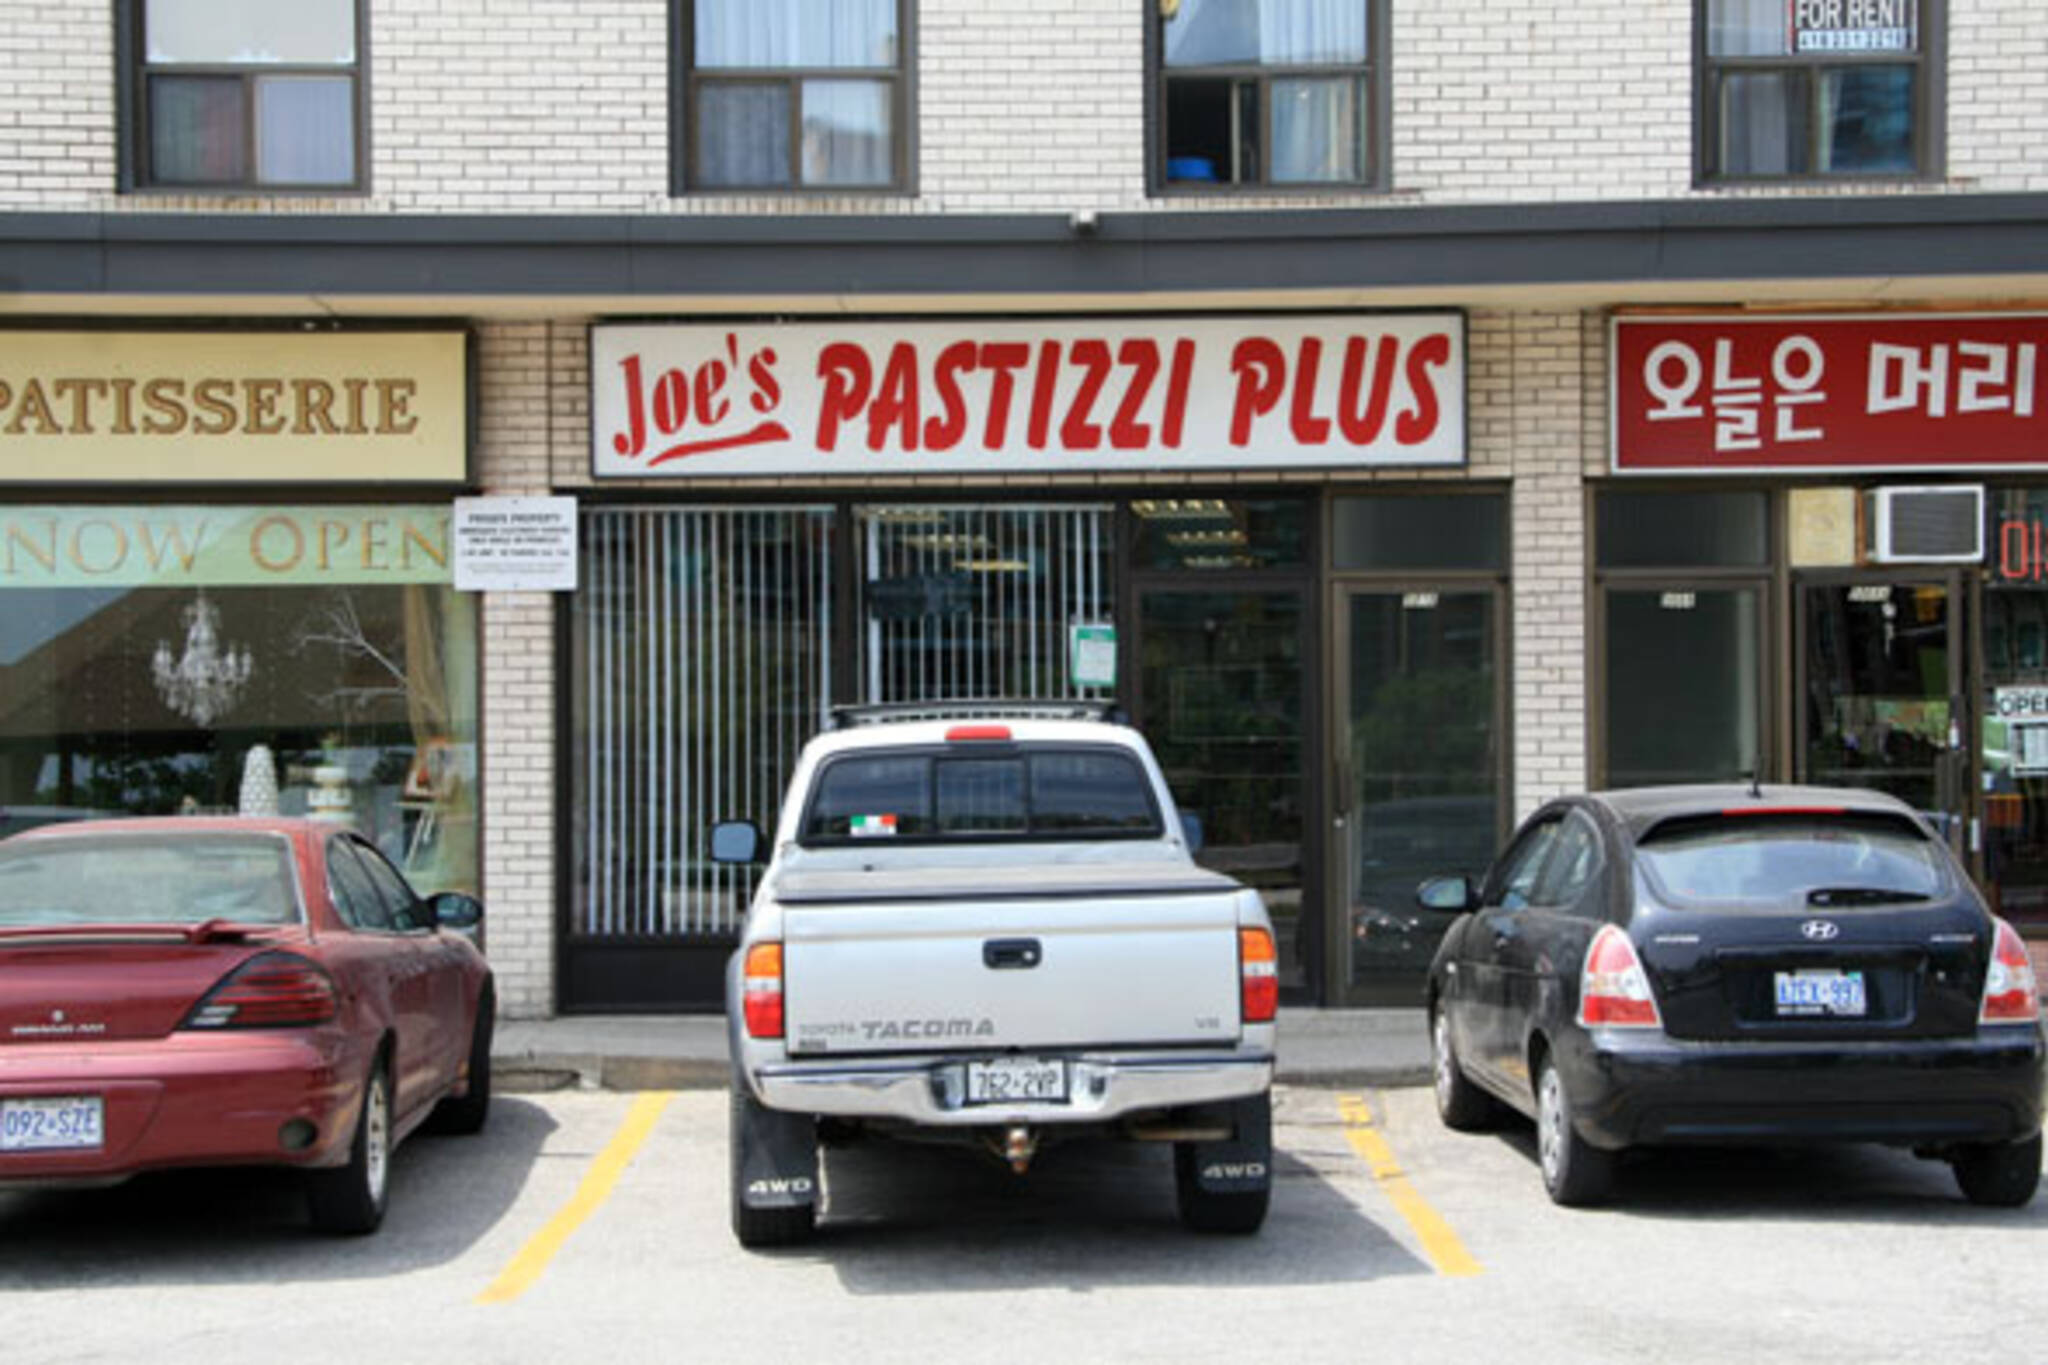 Joe's Pastizzi Plus